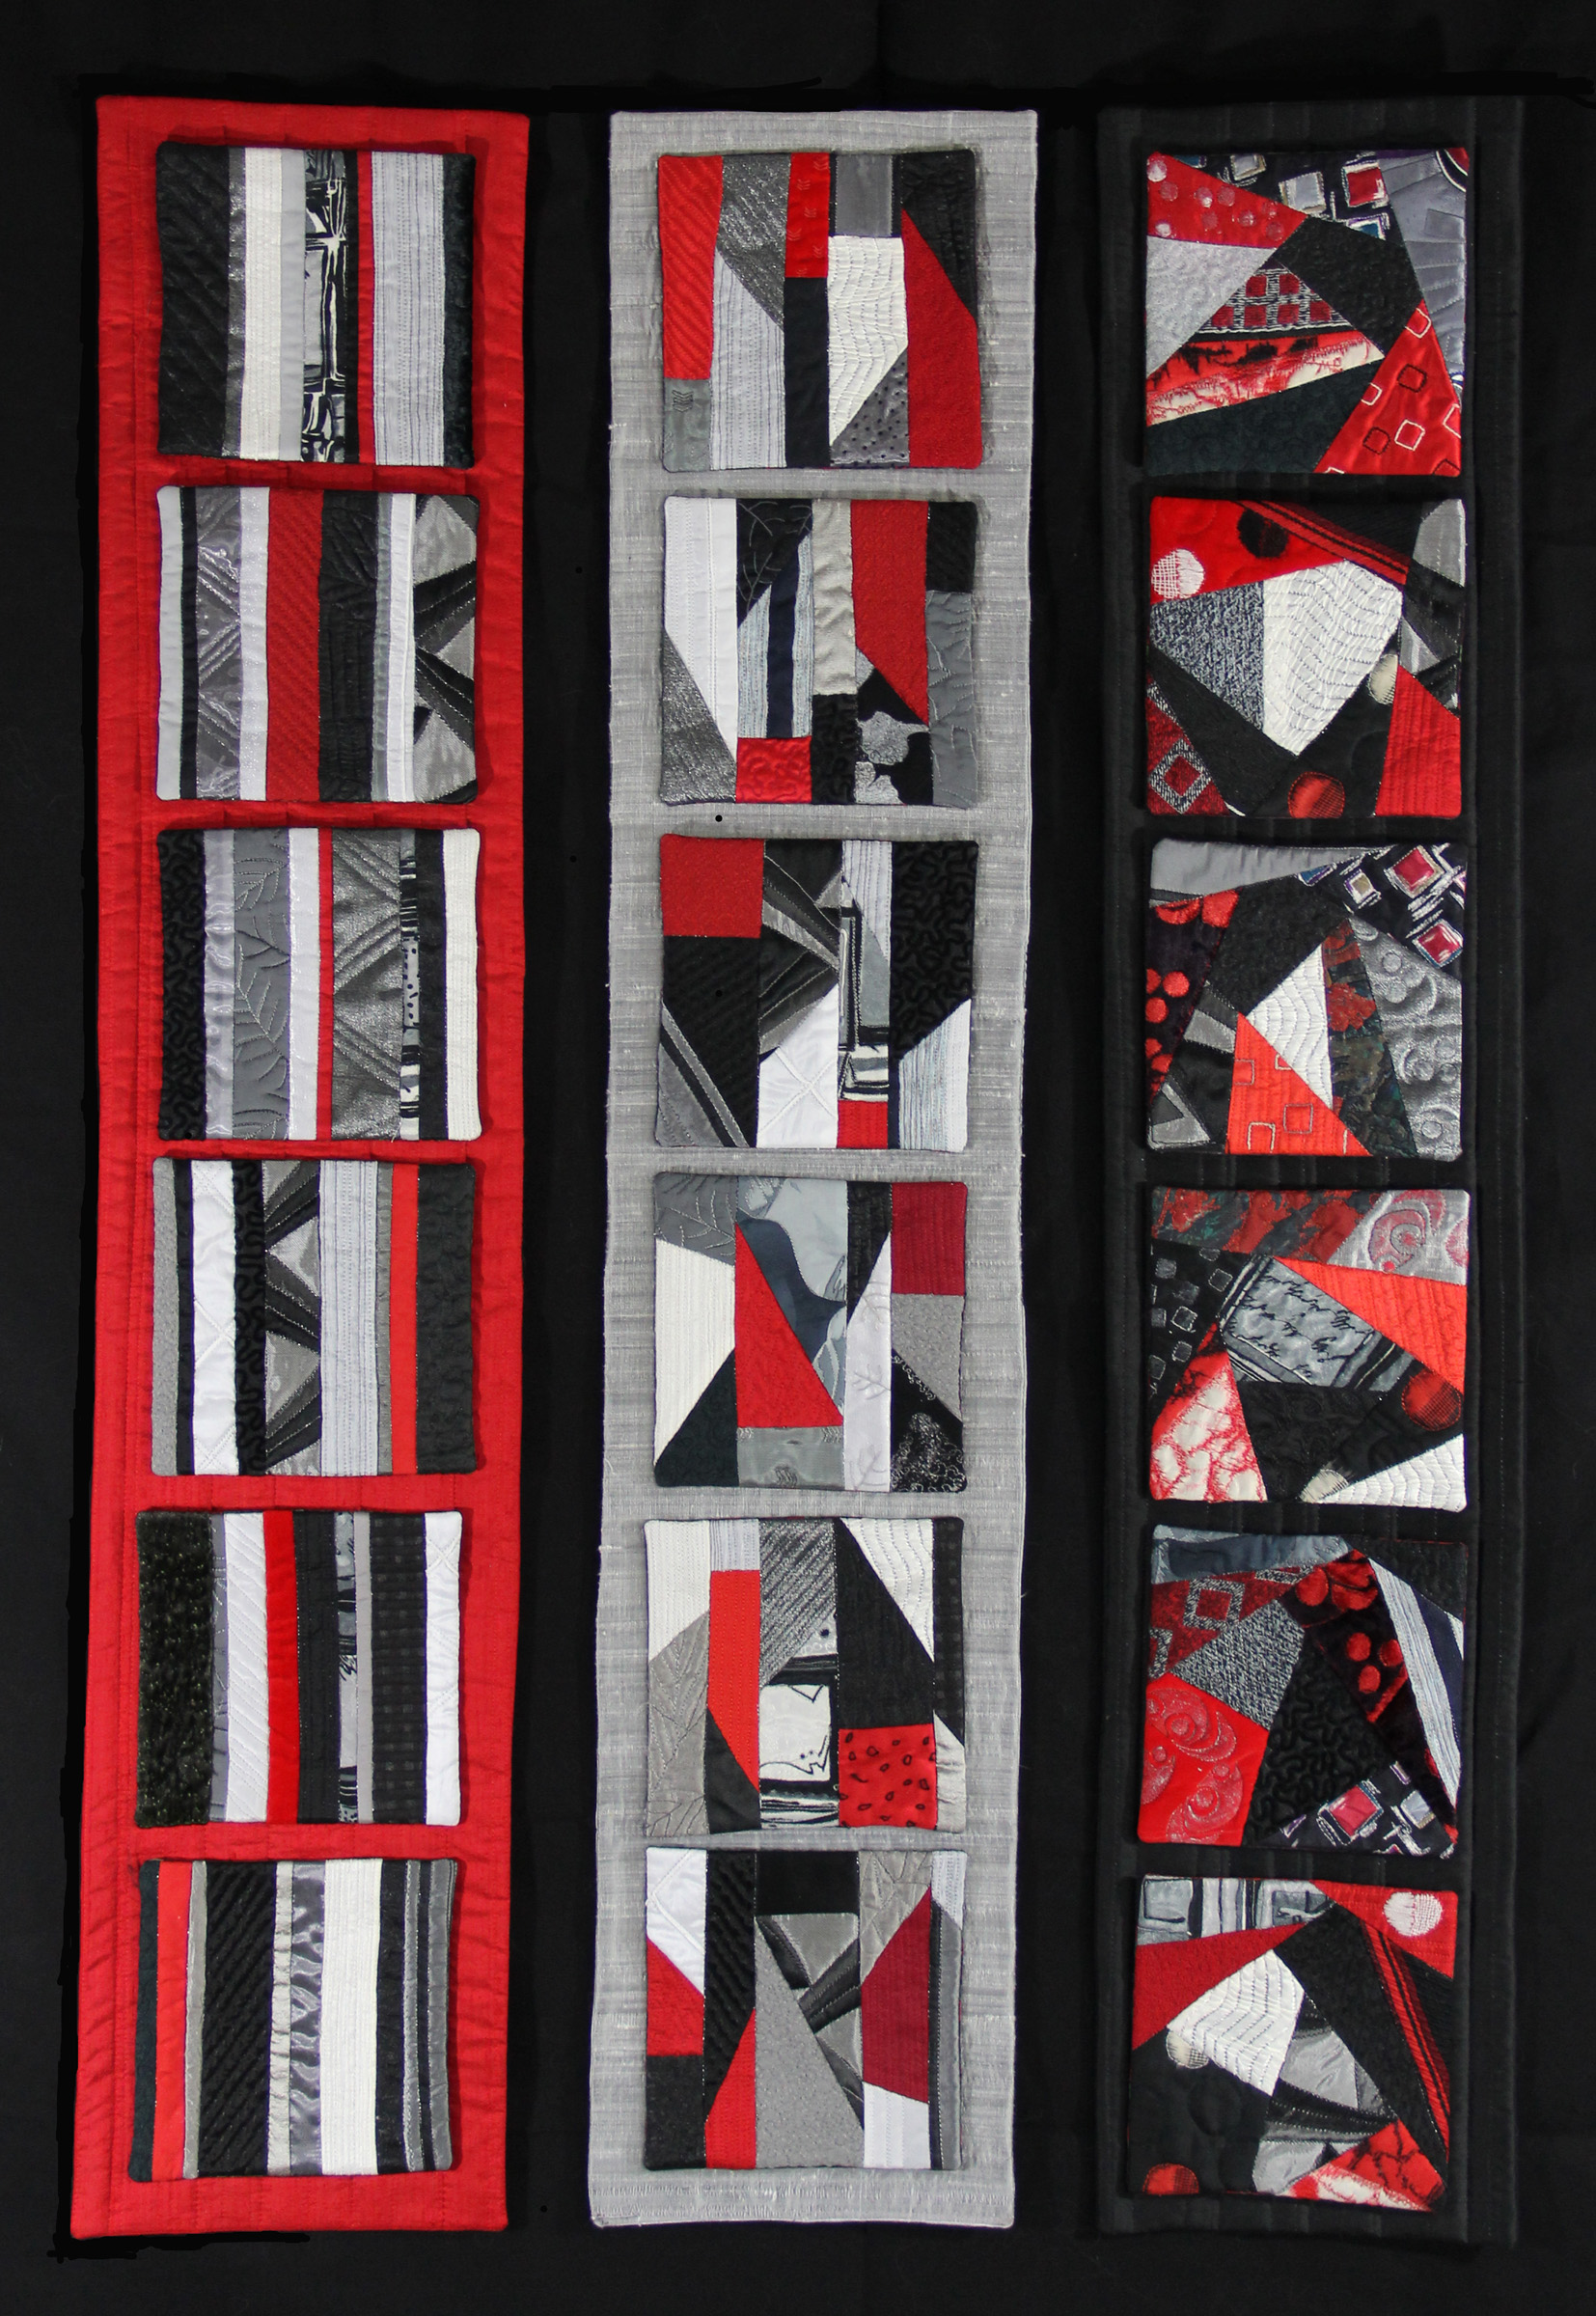 3 panels on red, white or black silk with 6 small quiltlets attached by snaps on each evolving from simple to complex design